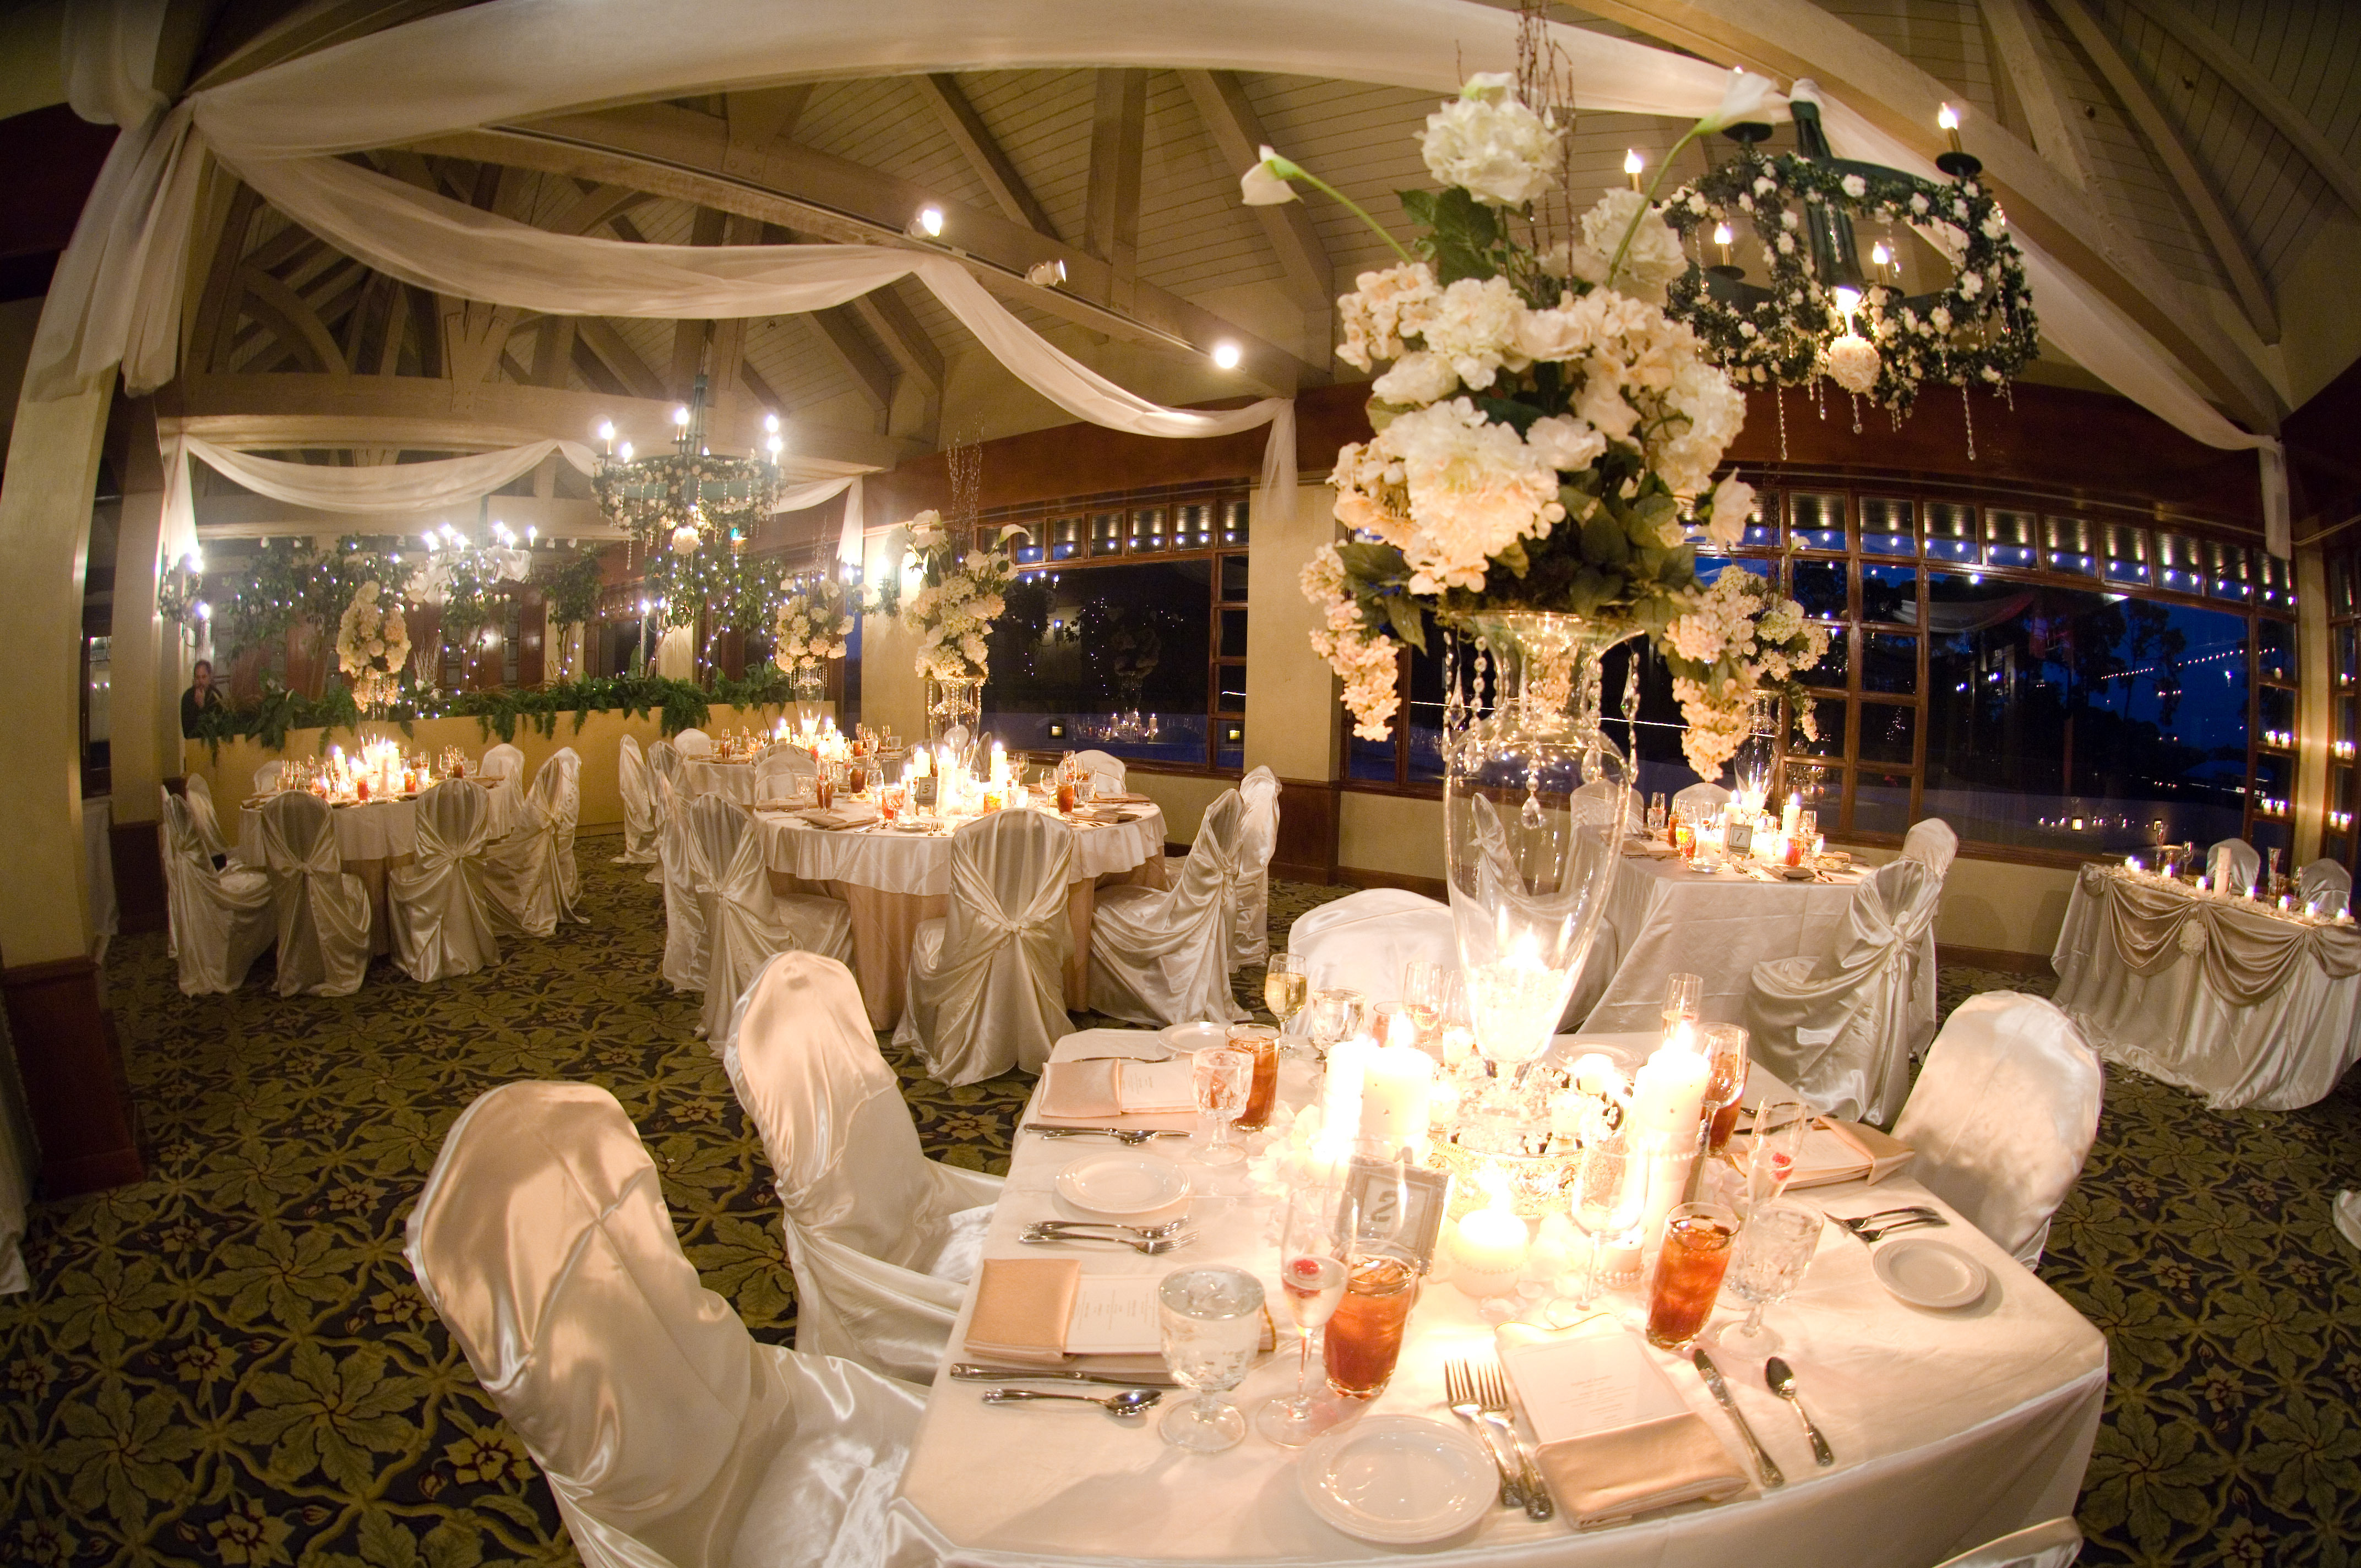 Reception, Flowers & Decor, Decor, Centerpieces, Flowers, And, Chair, Draping, Events, Designs, Linens, Lake, Covers, Chic, Mary, Fl